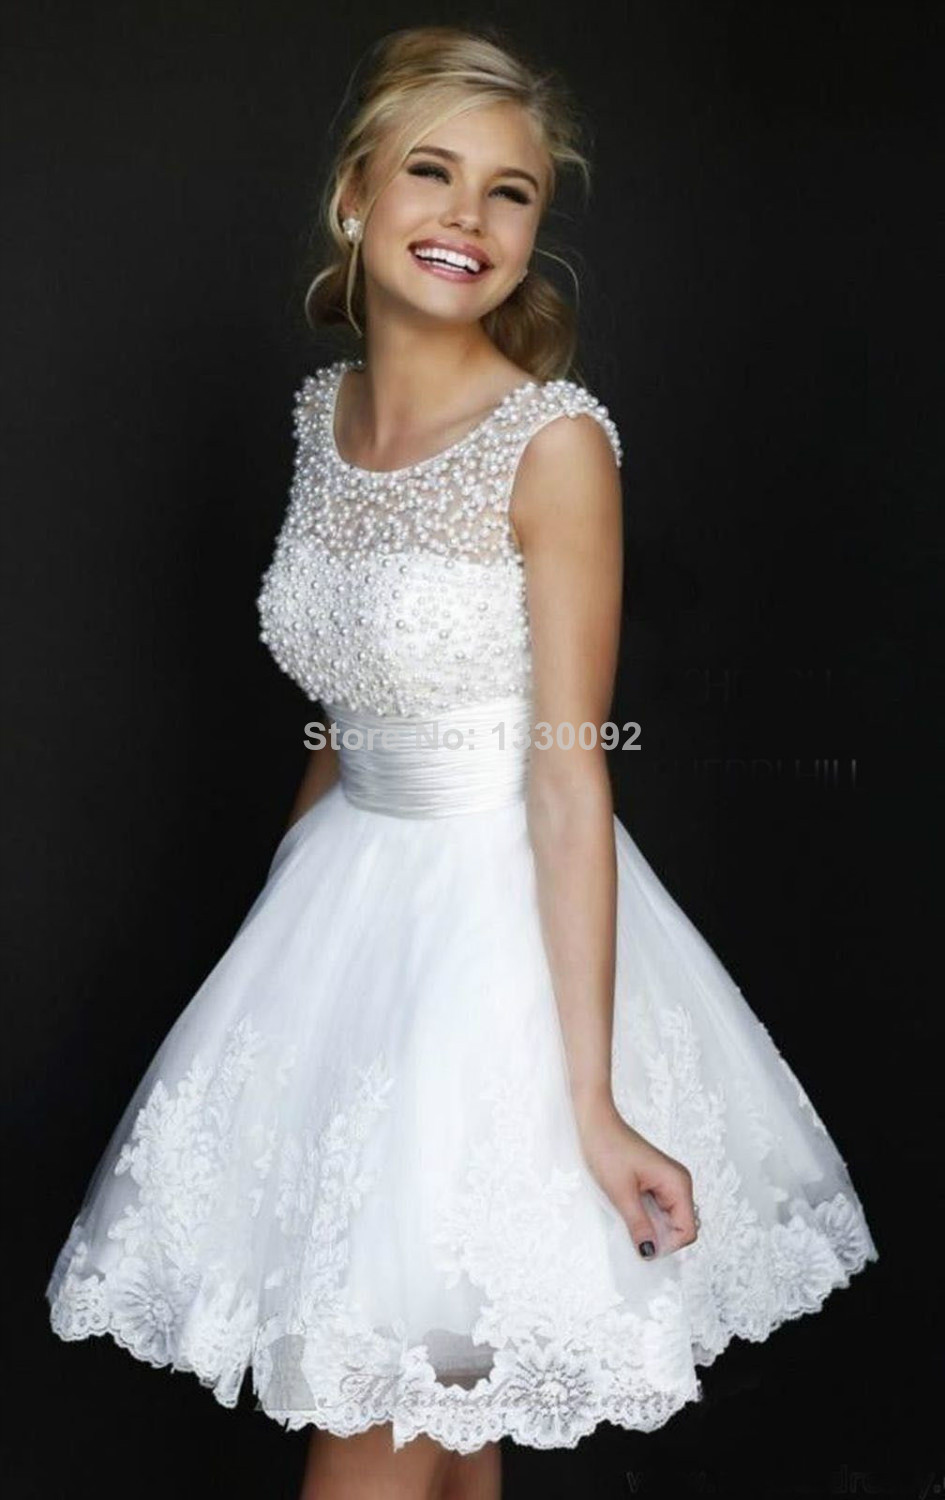 Online Shop White Short Homecoming Dresses Cocktail Dress Ideas ...